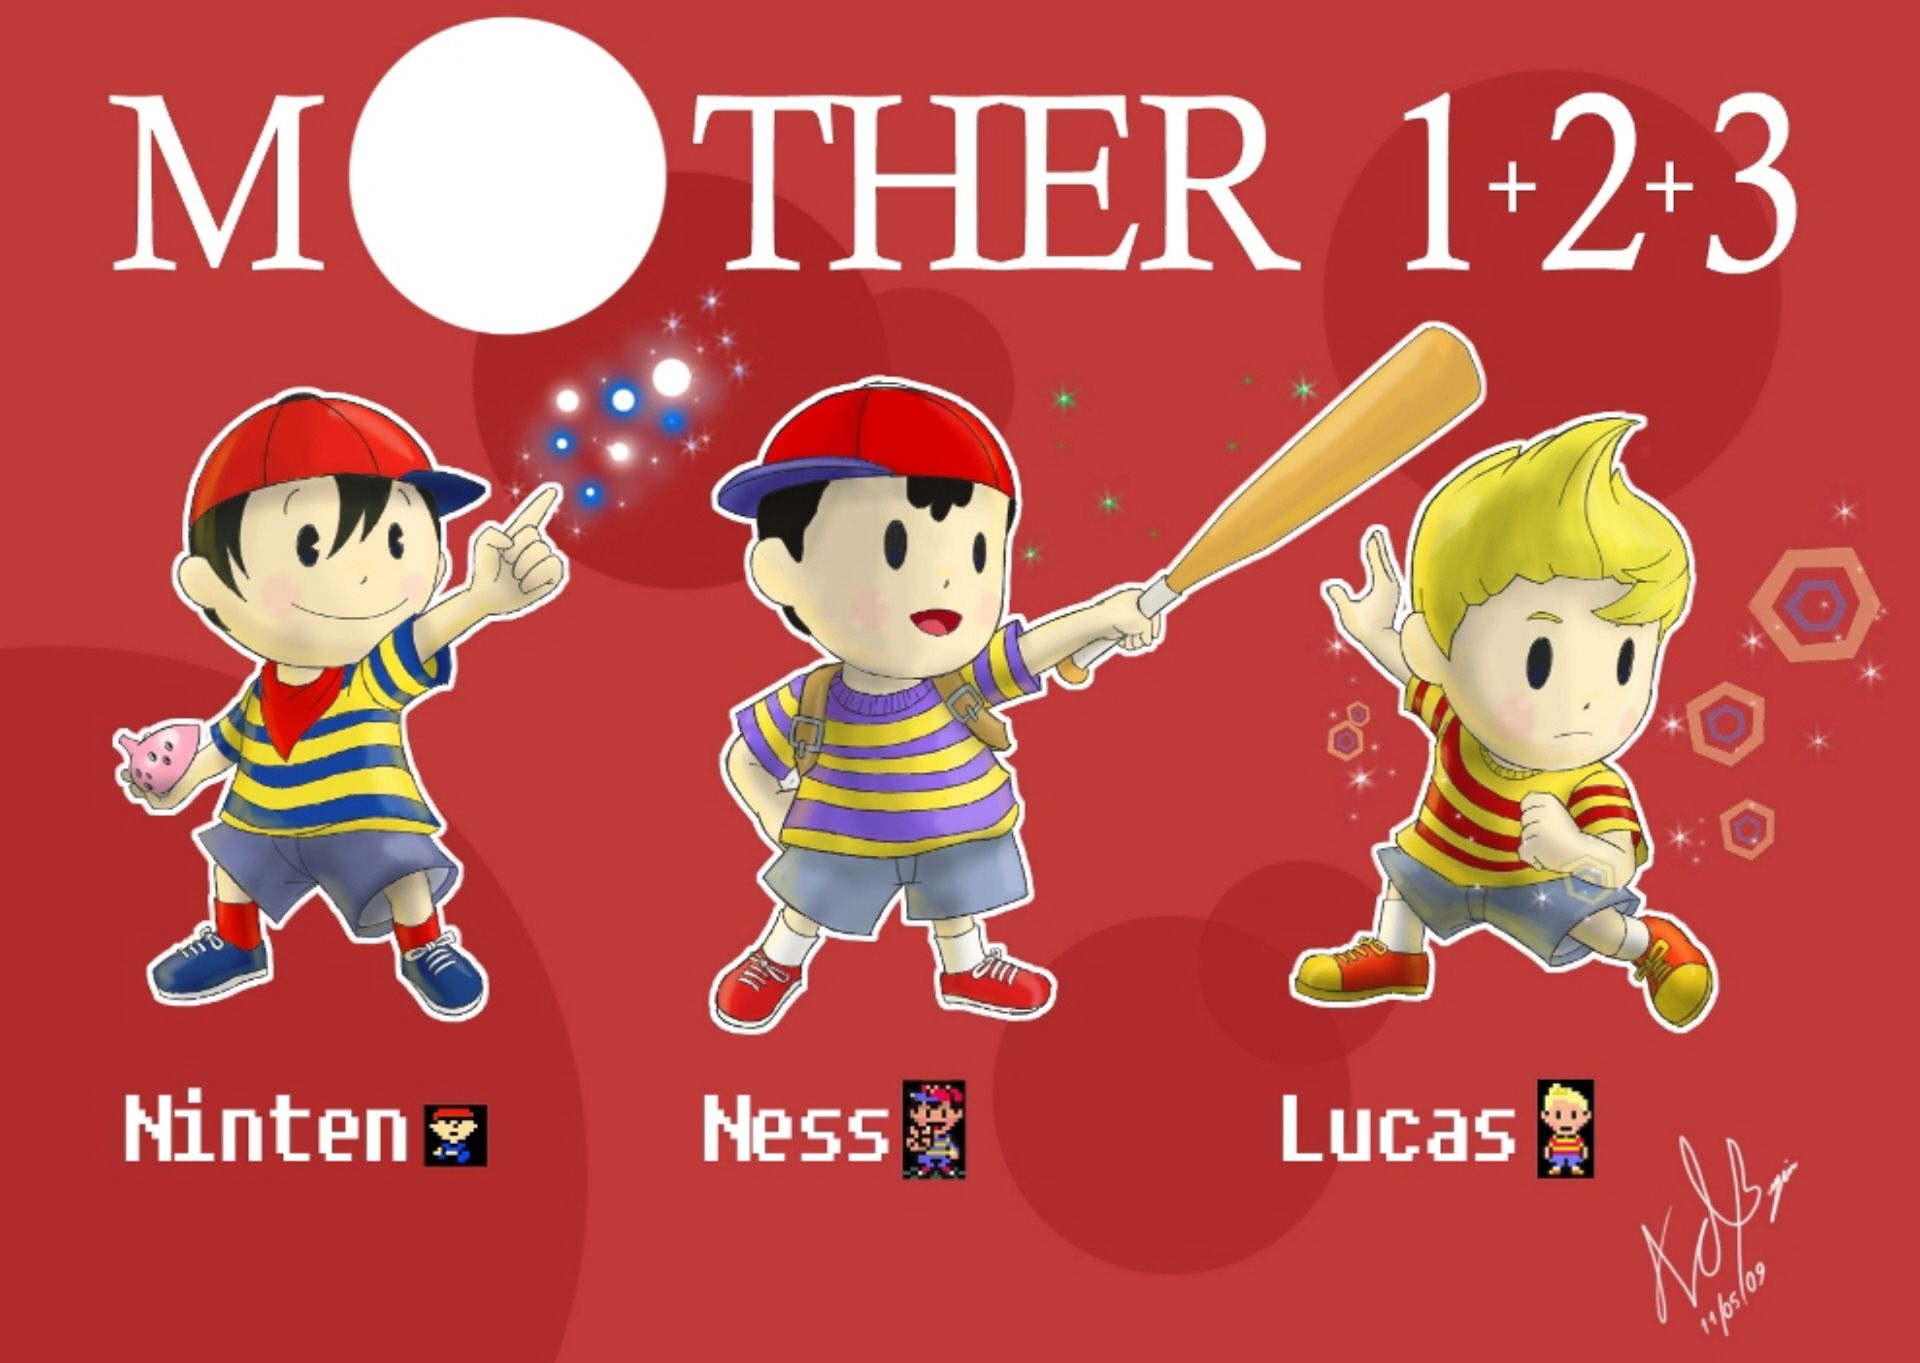 earthbound ness | Mother Earthbound Ness Lucas Ninten